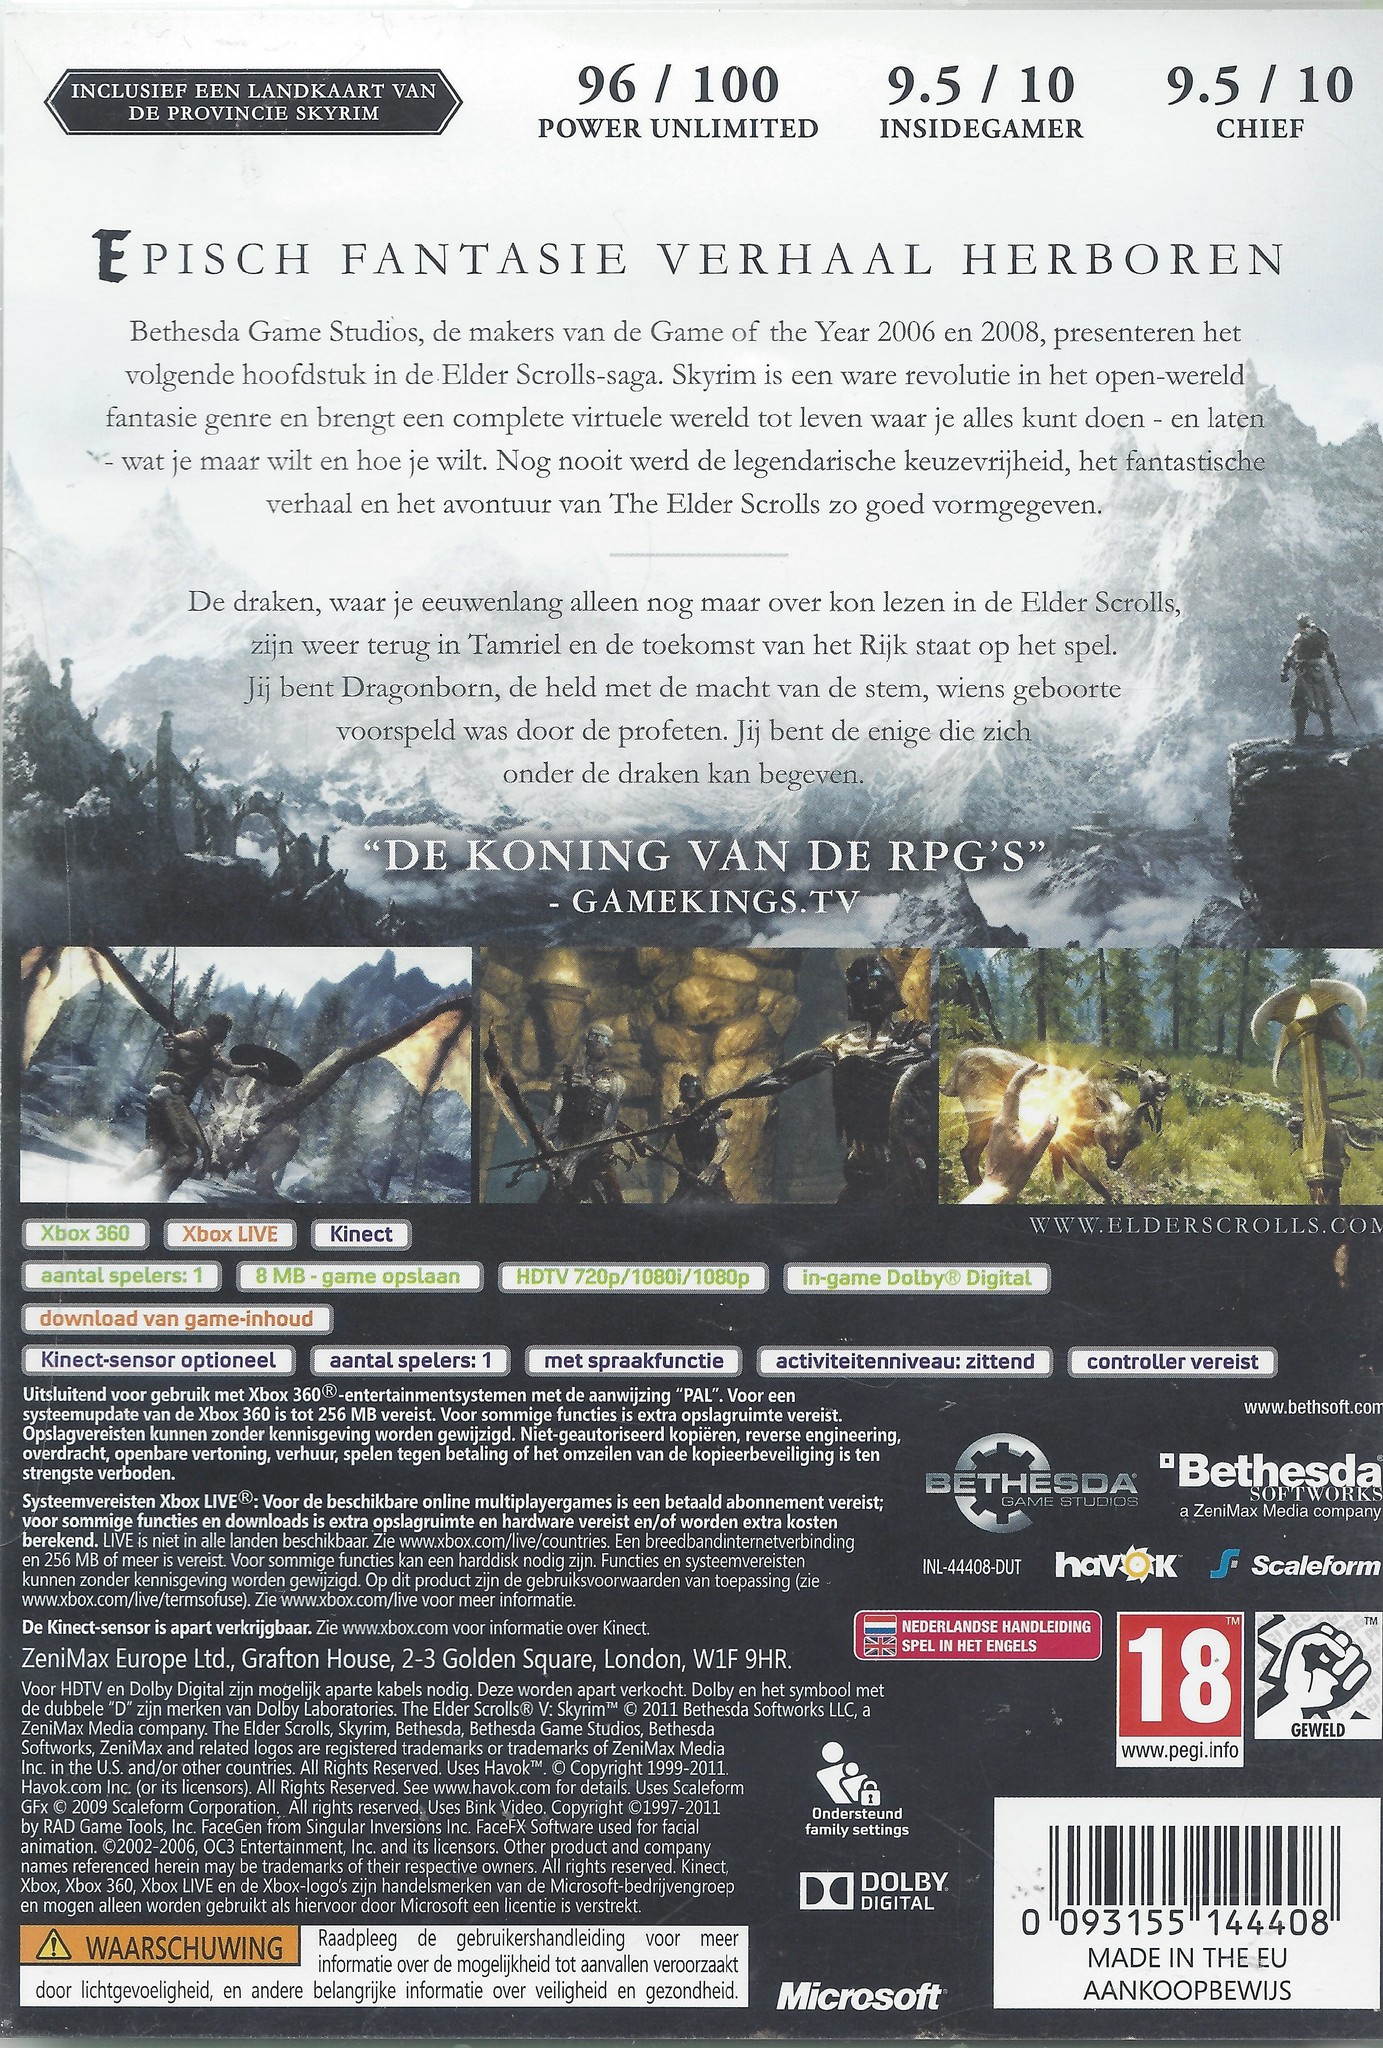 The Elders Scrolls V Skyrim for Xbox 360 - Passion for Games Webshop